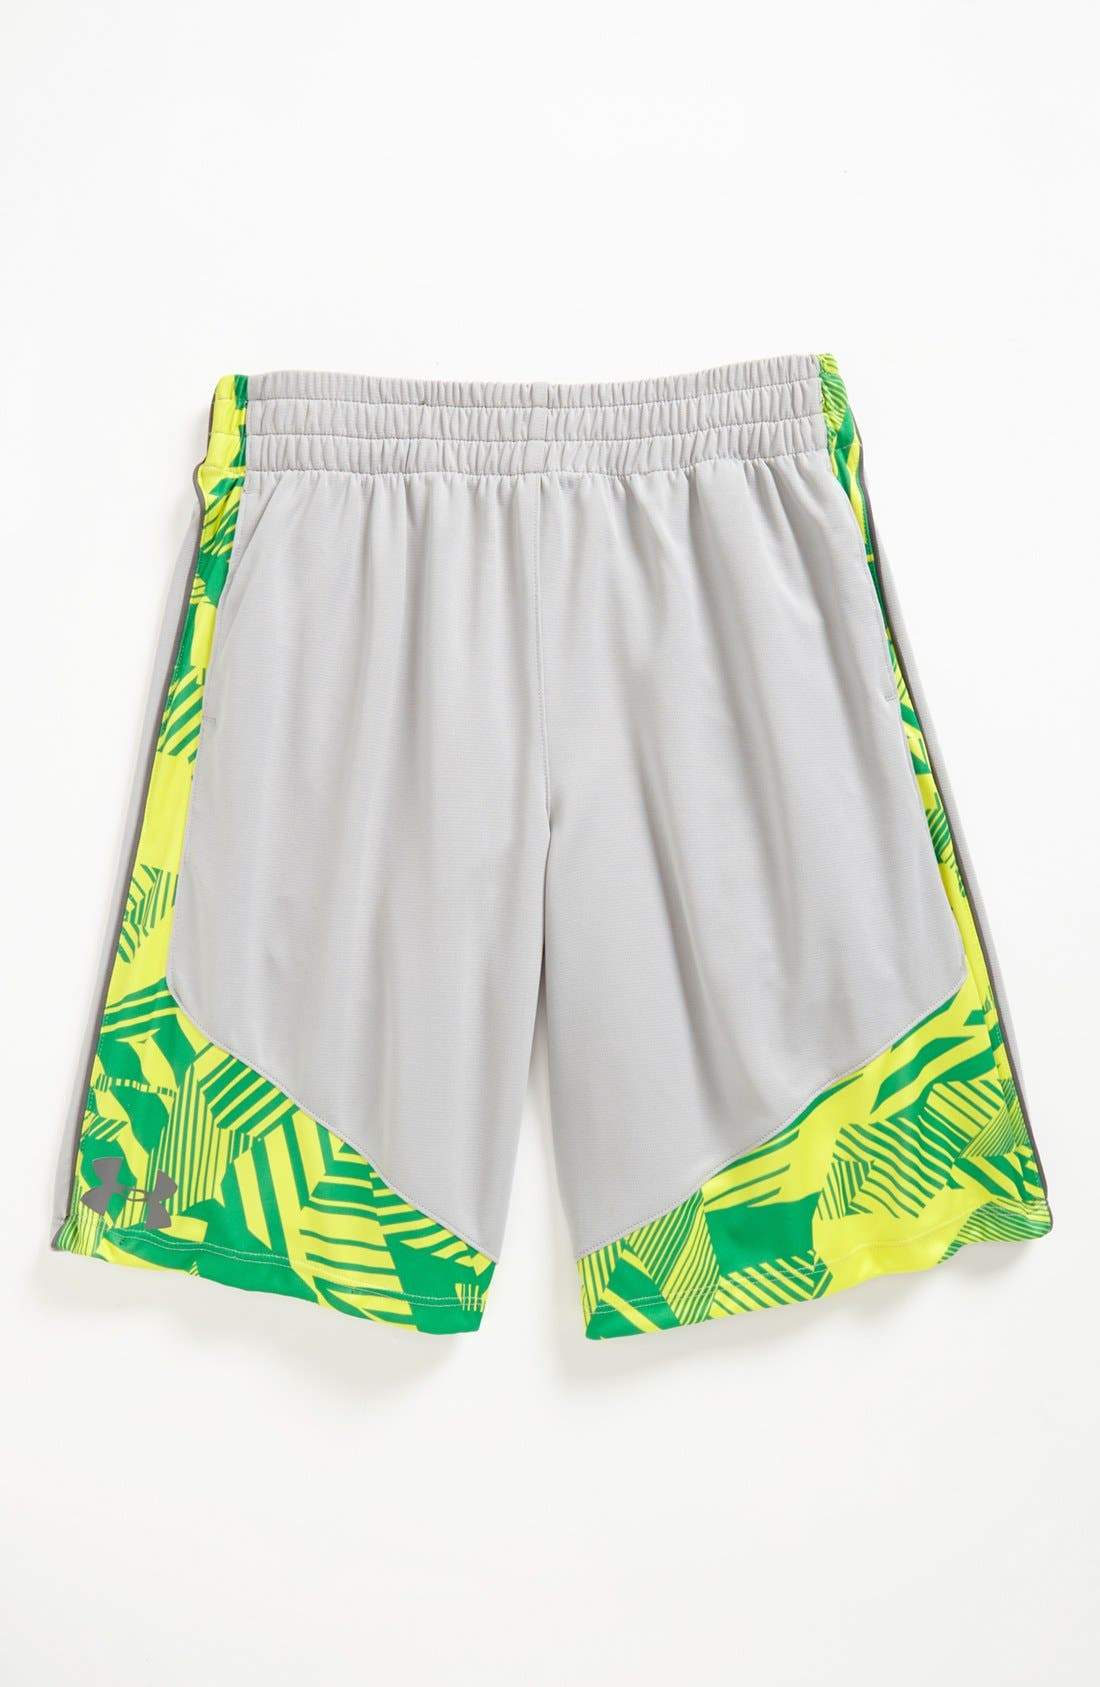 Alternate Image 1 Selected - Under Armour 'Flare 2.0' Shorts (Big Boys)